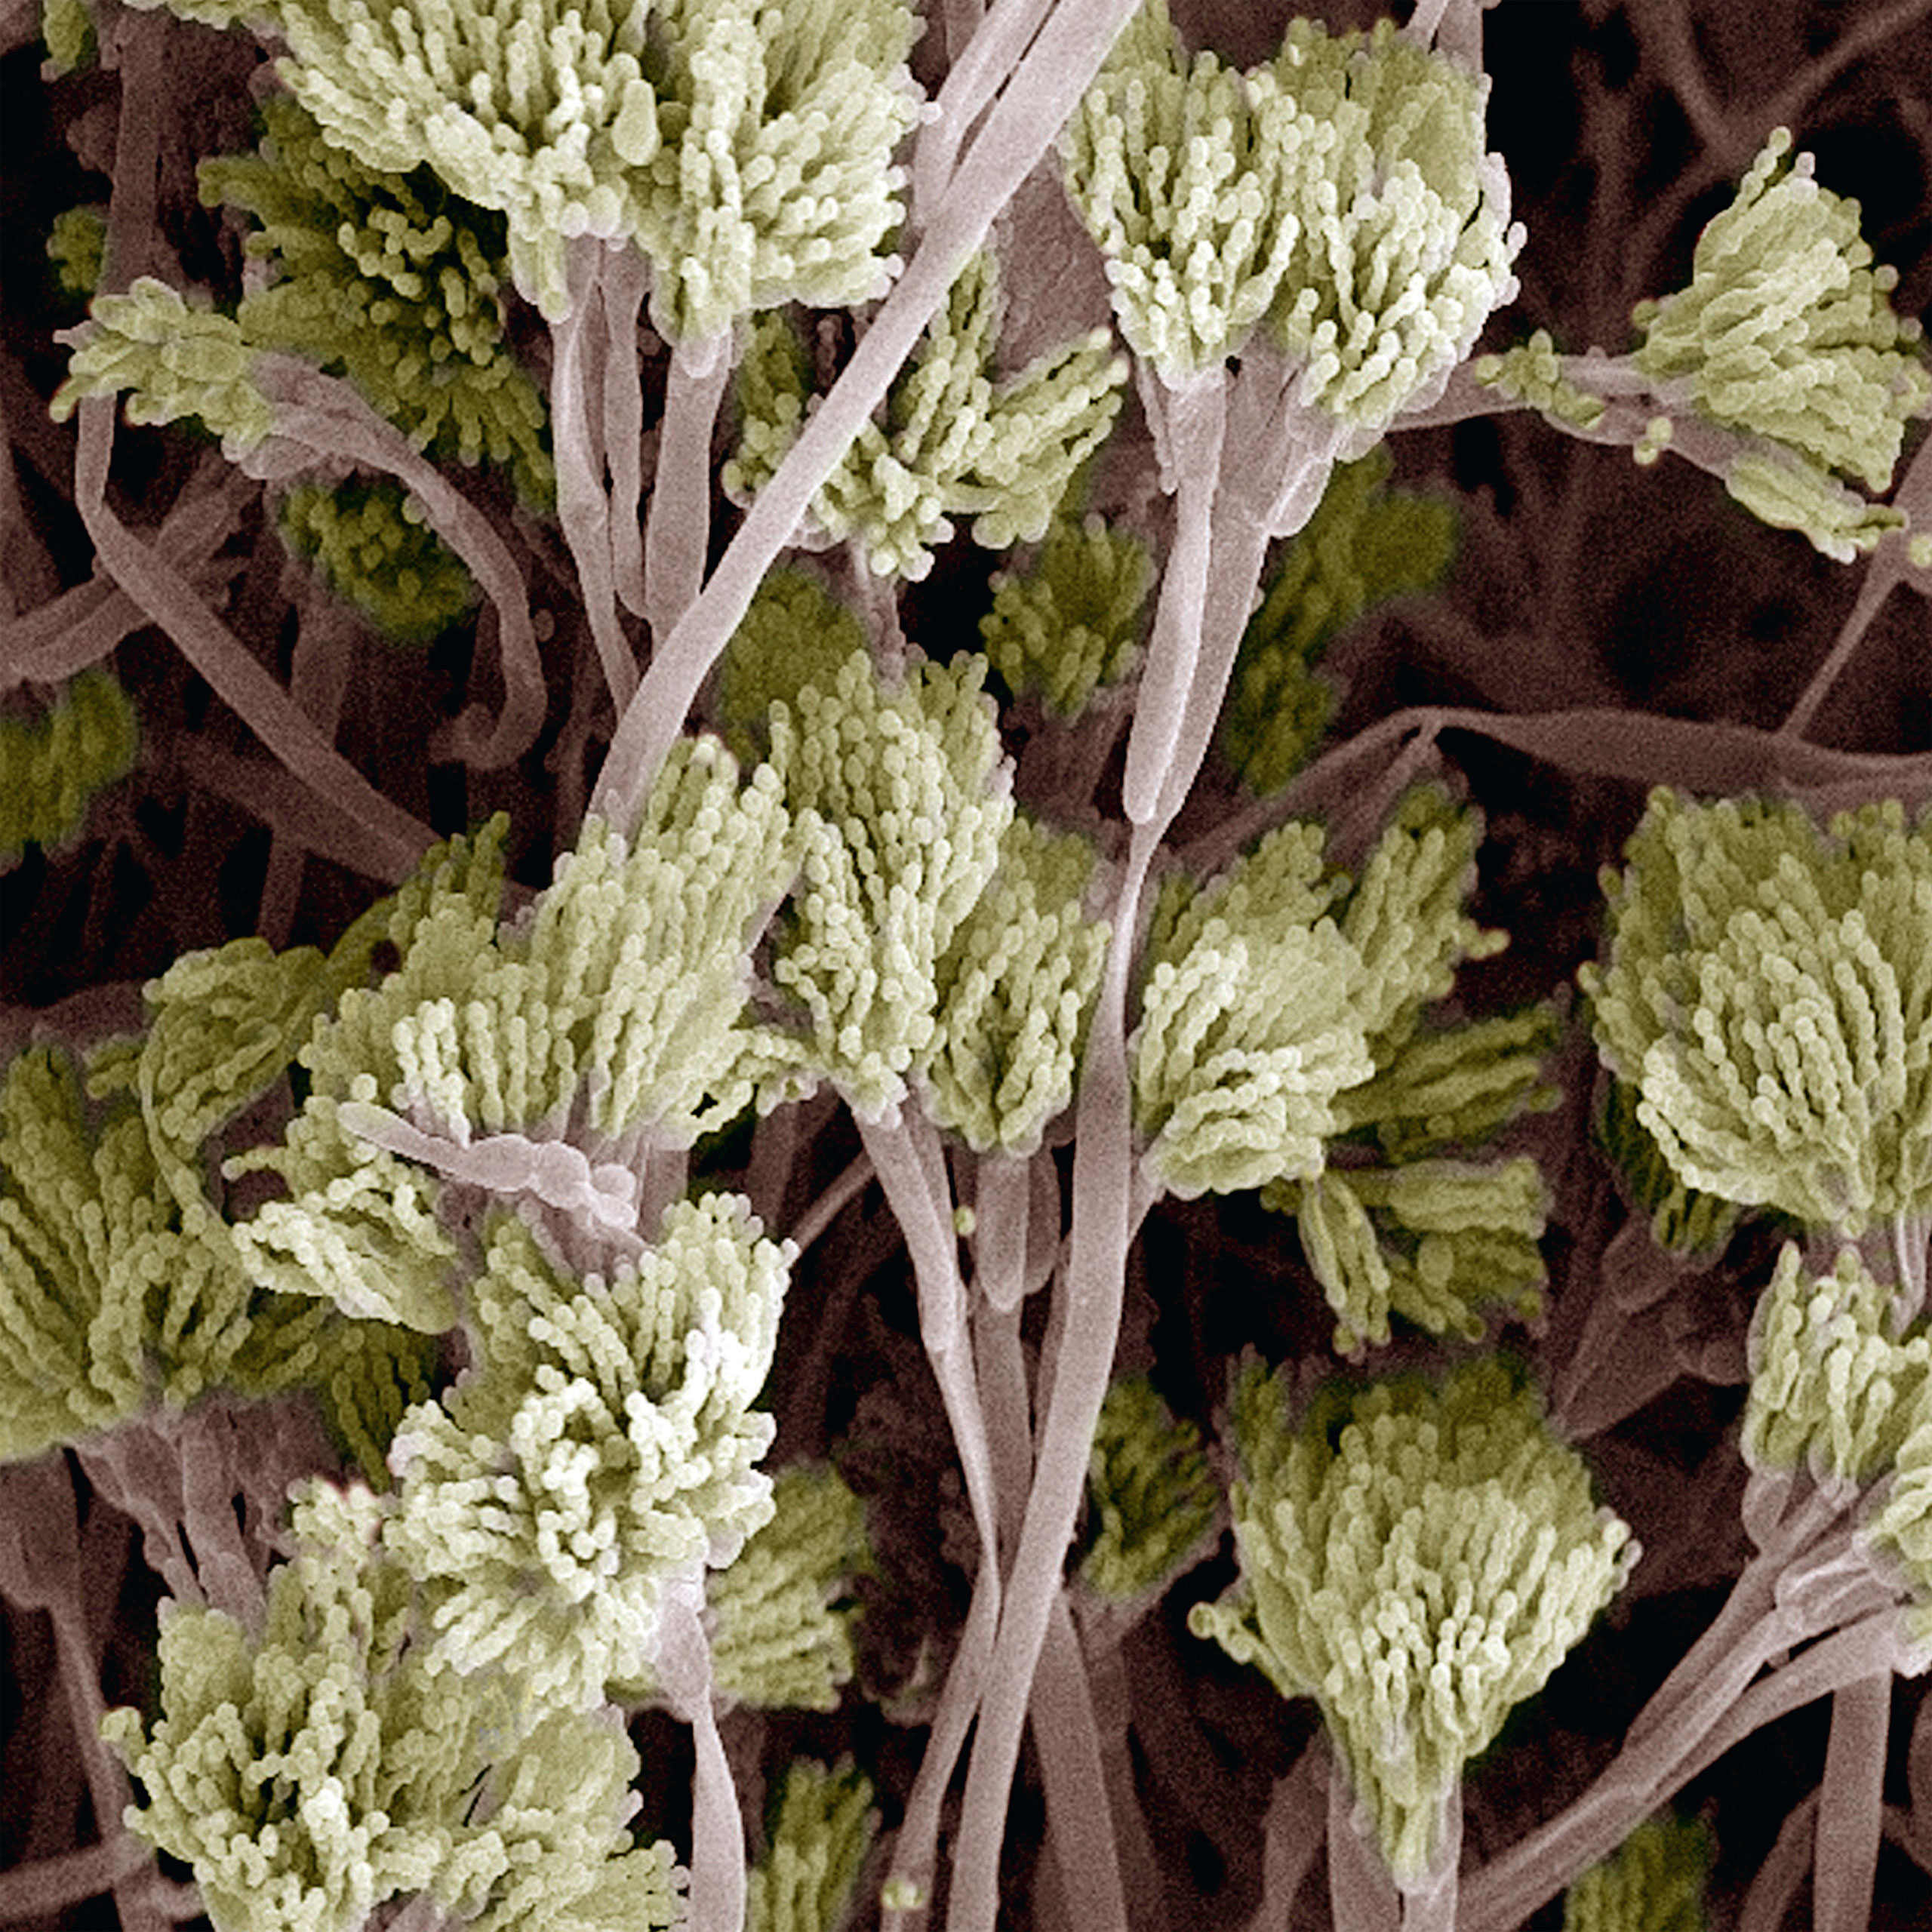 <b>Penicillium fungus</b> (colored scanning electron micrograph)